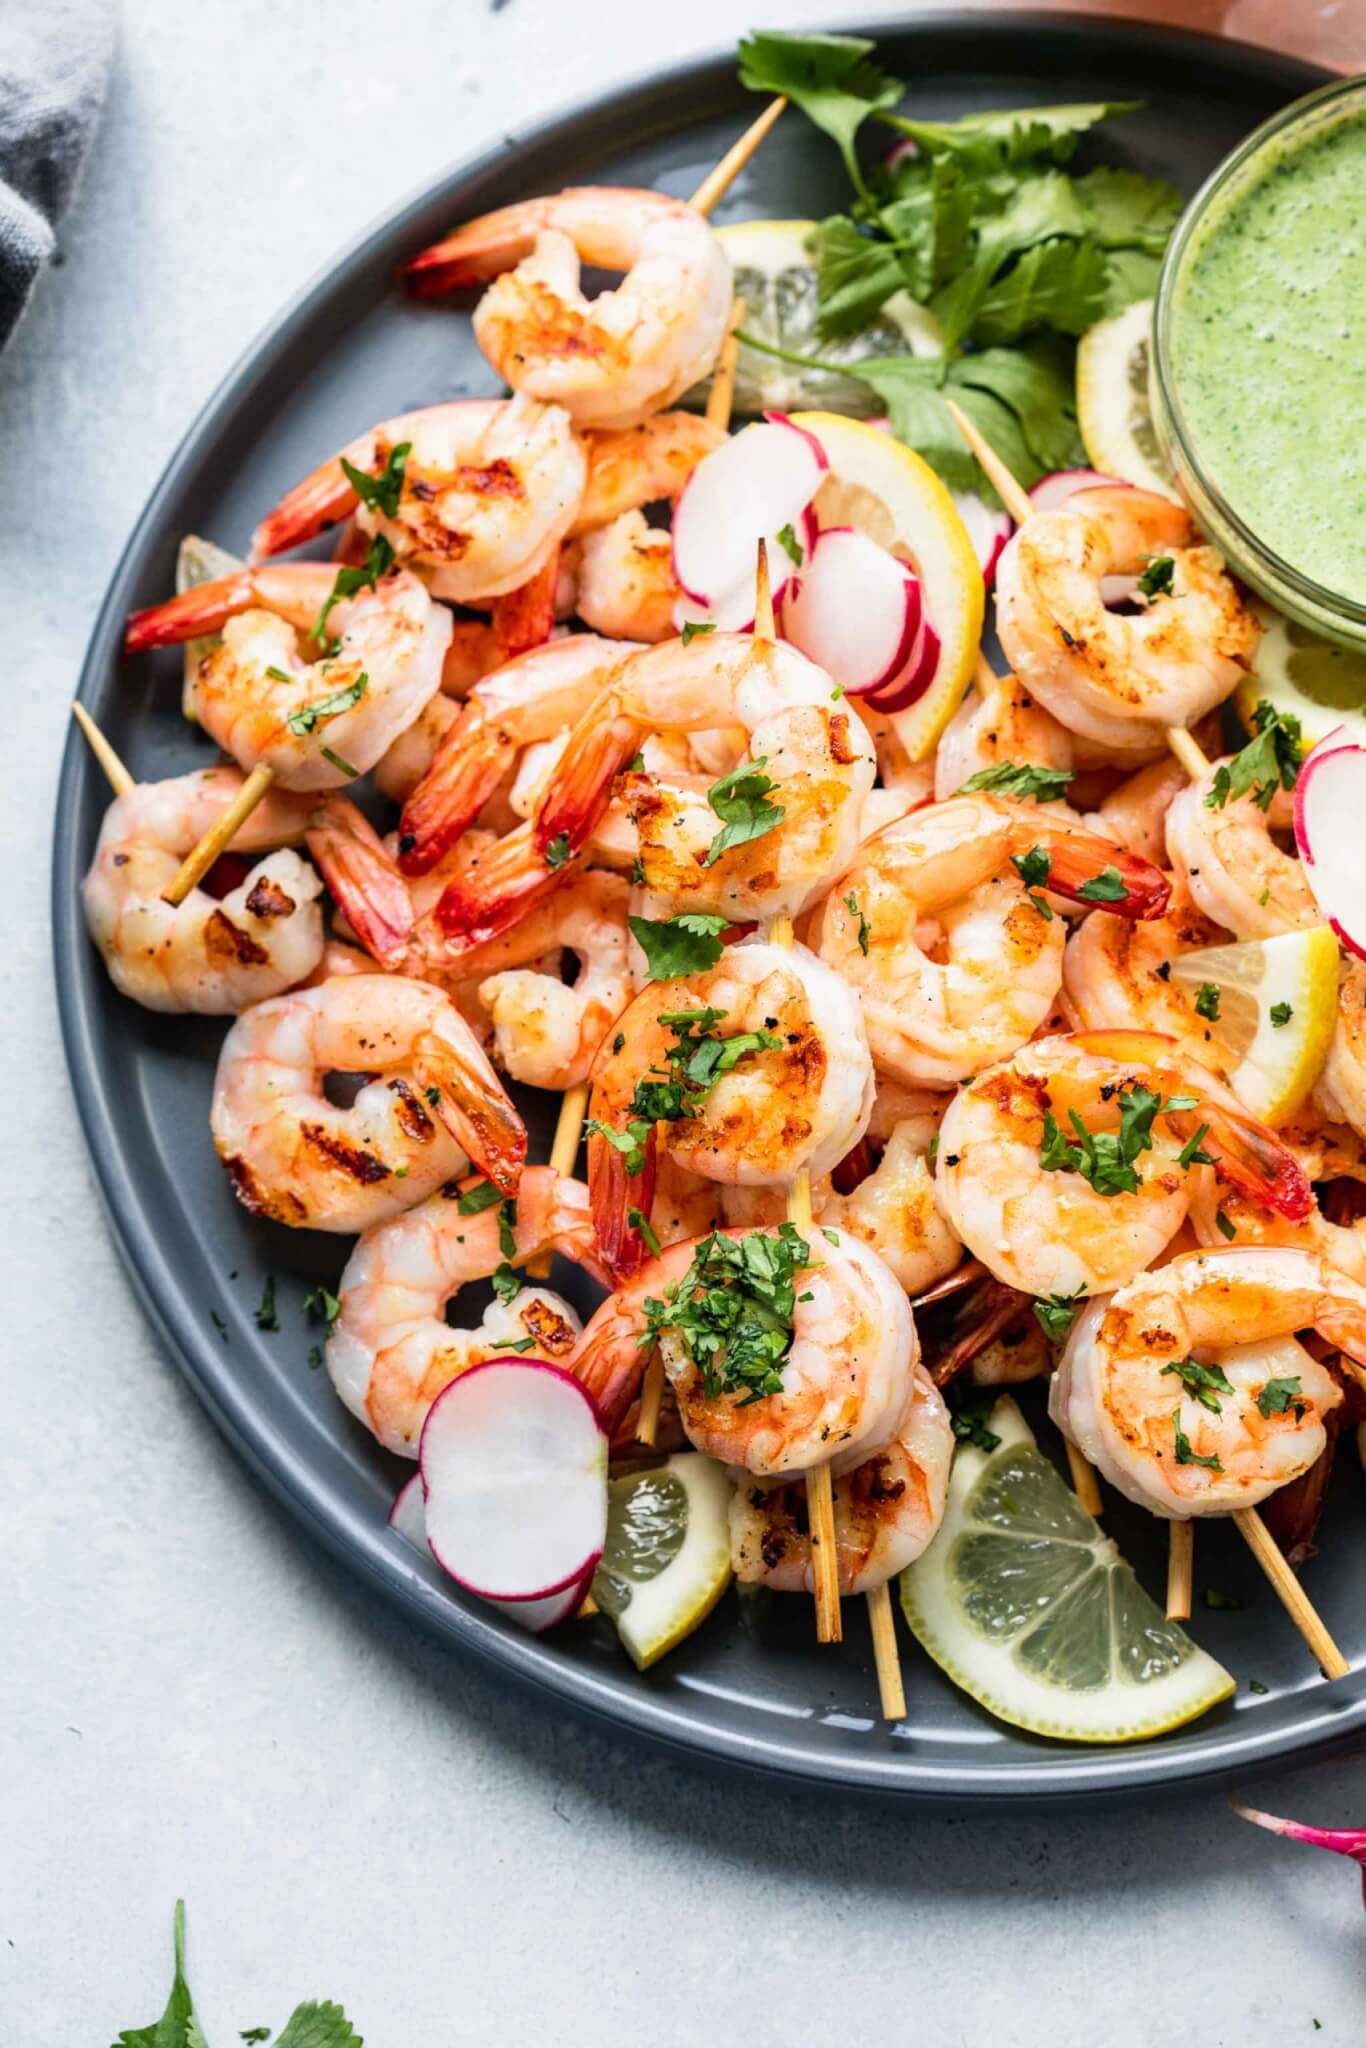 Cooked shrimp skewers arranged on a grey plate with bowl of creamy green sauce.